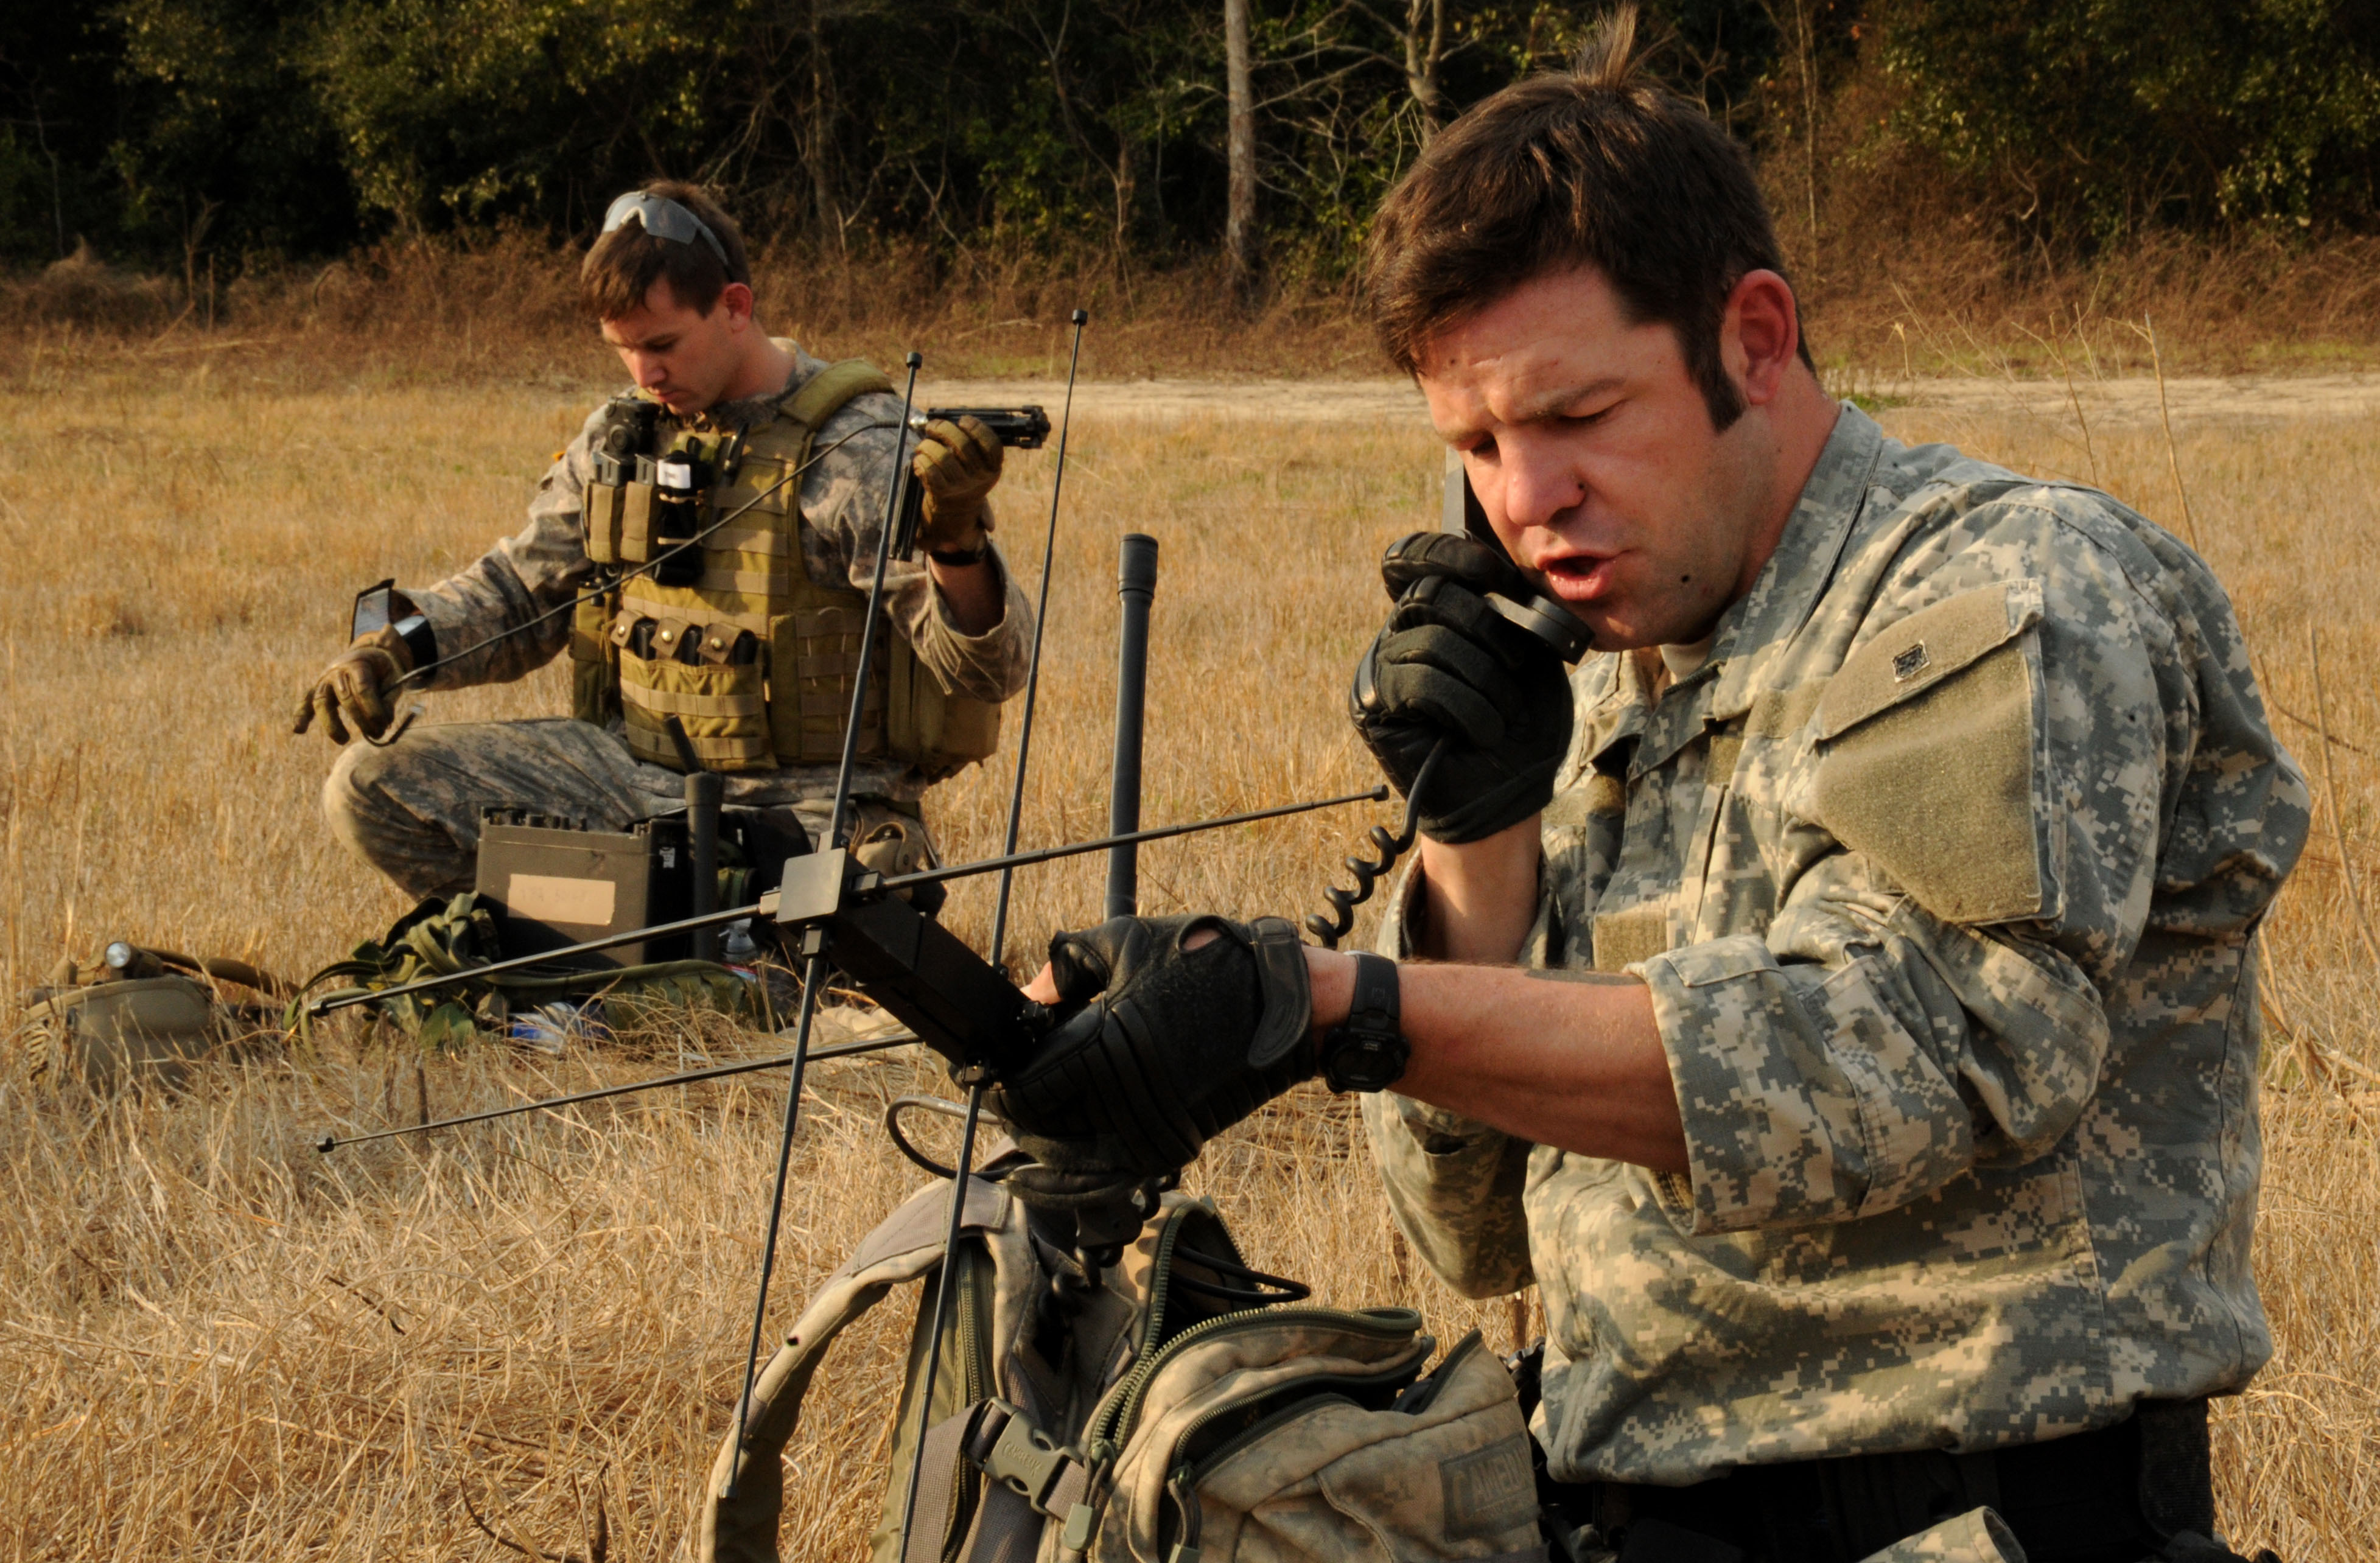 Troops pick which Army job is the best - We Are The Mighty